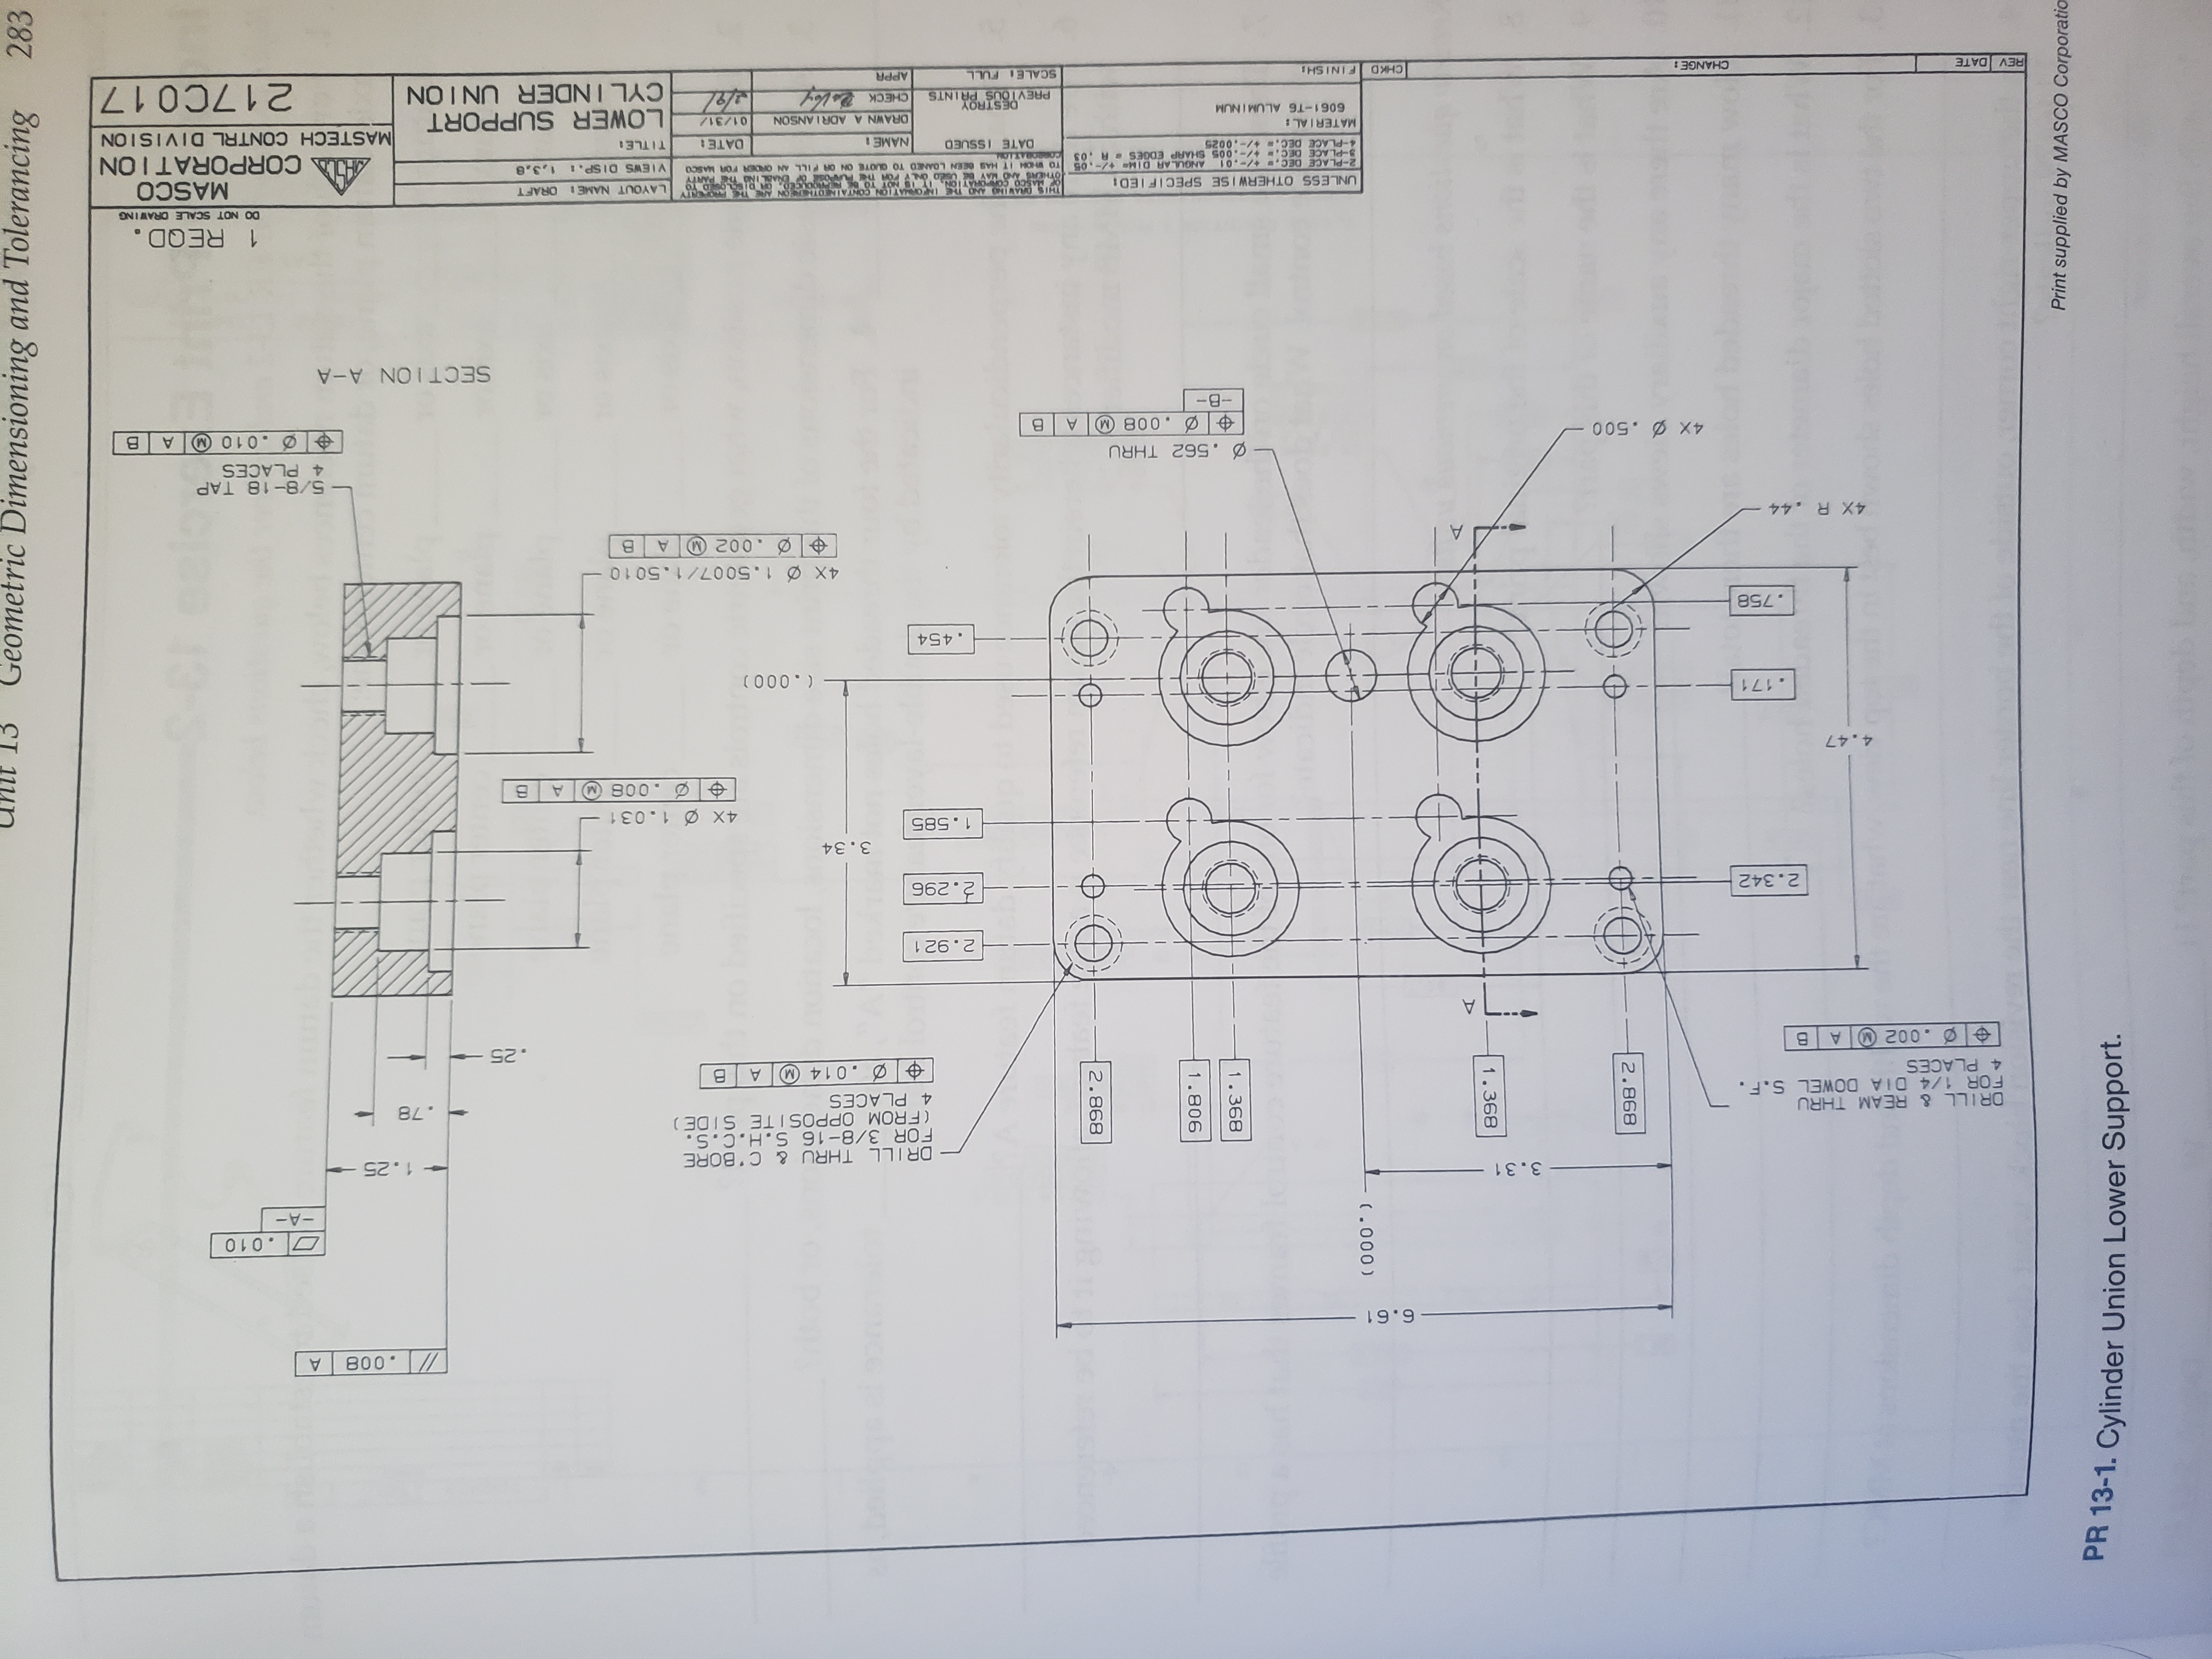 Geometric Dimensioning and Tolerancing 283 898 2 908 (000 893 386 898 2 Print supplied by MASCO Corporatio PR 13-1. Cylinder Union Lower Support. 800 6.61 O.010 -A- 3.31 1.25 DRILL THRU & C'BORE FOR 3/8-16 S.H.C.S. (FROM OPPOSITE SIDE) 4 PLACES DRILL & REAM THRU FOR 1/4 DIA DOWEL S.F. 4 PLACES .78 .014 M A .002 A B .25 L.. 2.921 2.342 96 2 3.34 1.585 4X 1.031 800 4.47 .171 ( 000 ) .454 .758 4X 1.5007/1.501 o .002 A 4X R.44 - 5/8-18 TAP 4 PLACES .562 THRU Ø.010 A B 0050 -B- 800 SECTION A-A 1 REQD. DO NOT SCALE ORAWING THIS DRAVING AND THE INFORMAYION CONTAINEDTHEREON ARE THE FROPERTY OTHERS AND MAY 8SED ONLY POR TE FURPOSE OF ENABL INO THE PARTY TO WHOM IT HAS BEEN LOANED TO QUOTE ON OR PILL AN OR0ER FOR MASCO UNLESS OTHERWISE SPECIFIED LAYOUT NAME ORAFT MASCO A CORPORATION ANGUL AR DIM- +/-.05 2-PLACE DEC. -01 8-PLACE DEC. -.005 SHARP EDGES A .03 VIEWS DISP. DATE ISSUED NAME: DATE: TITLE 9200-/+ 30 d- MATERIAL: MASTECH CONTRL DIVISION LOWER SUPPORT CYLINDER UNION ORAWN A ADRIANSON 01/31/ 6061-T6 ALUMINUM DESTROY PREVIOUS PRINTS 217C017 CHECK REV DATE CHANGE: CHKD FINISH SCALE FULL APPR